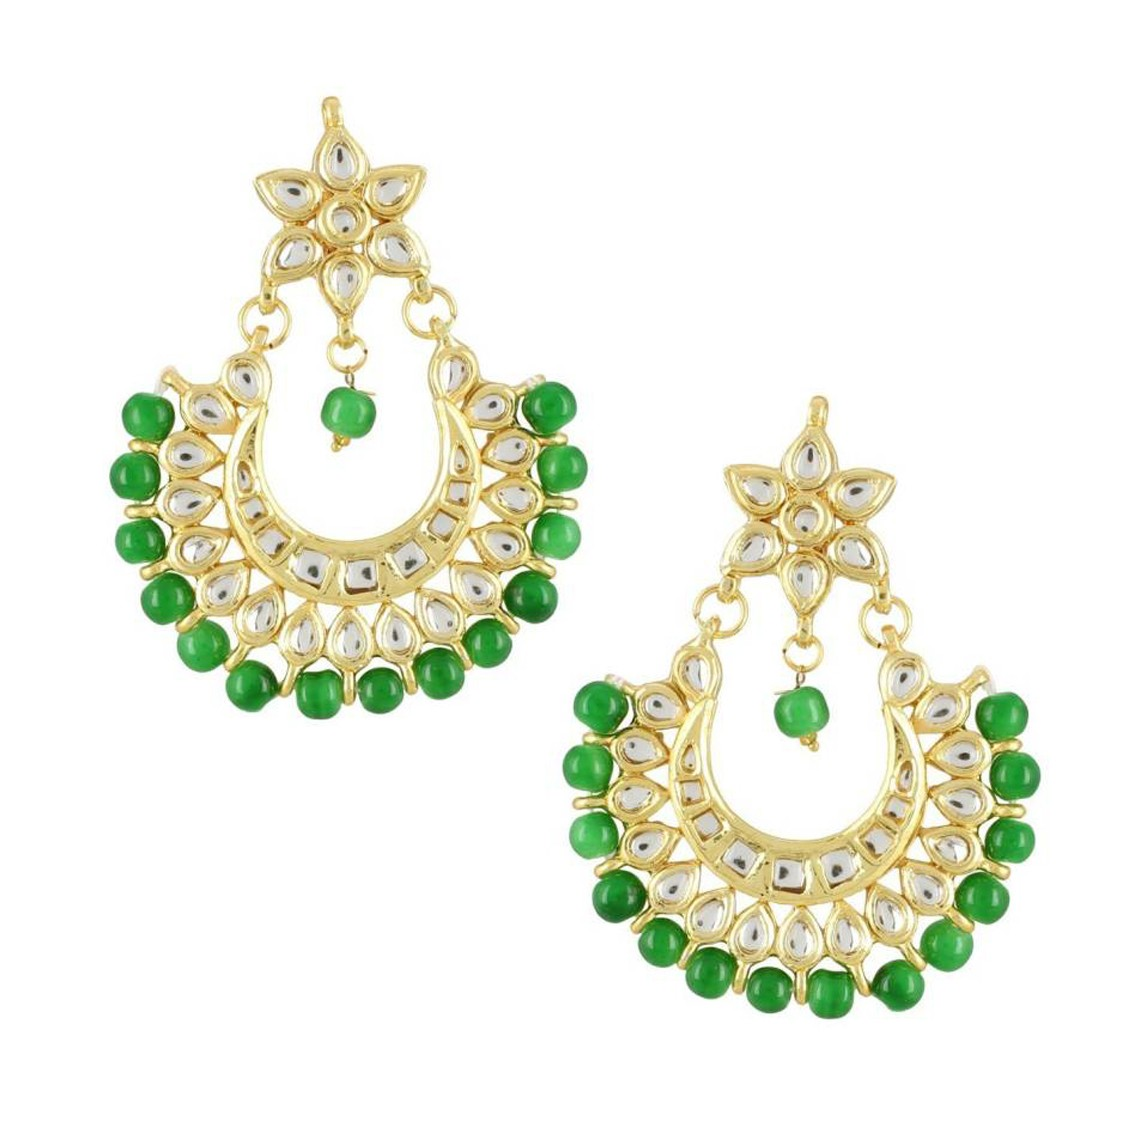 Kundan Earrings Chand Baali Green Color For Woman & Girls